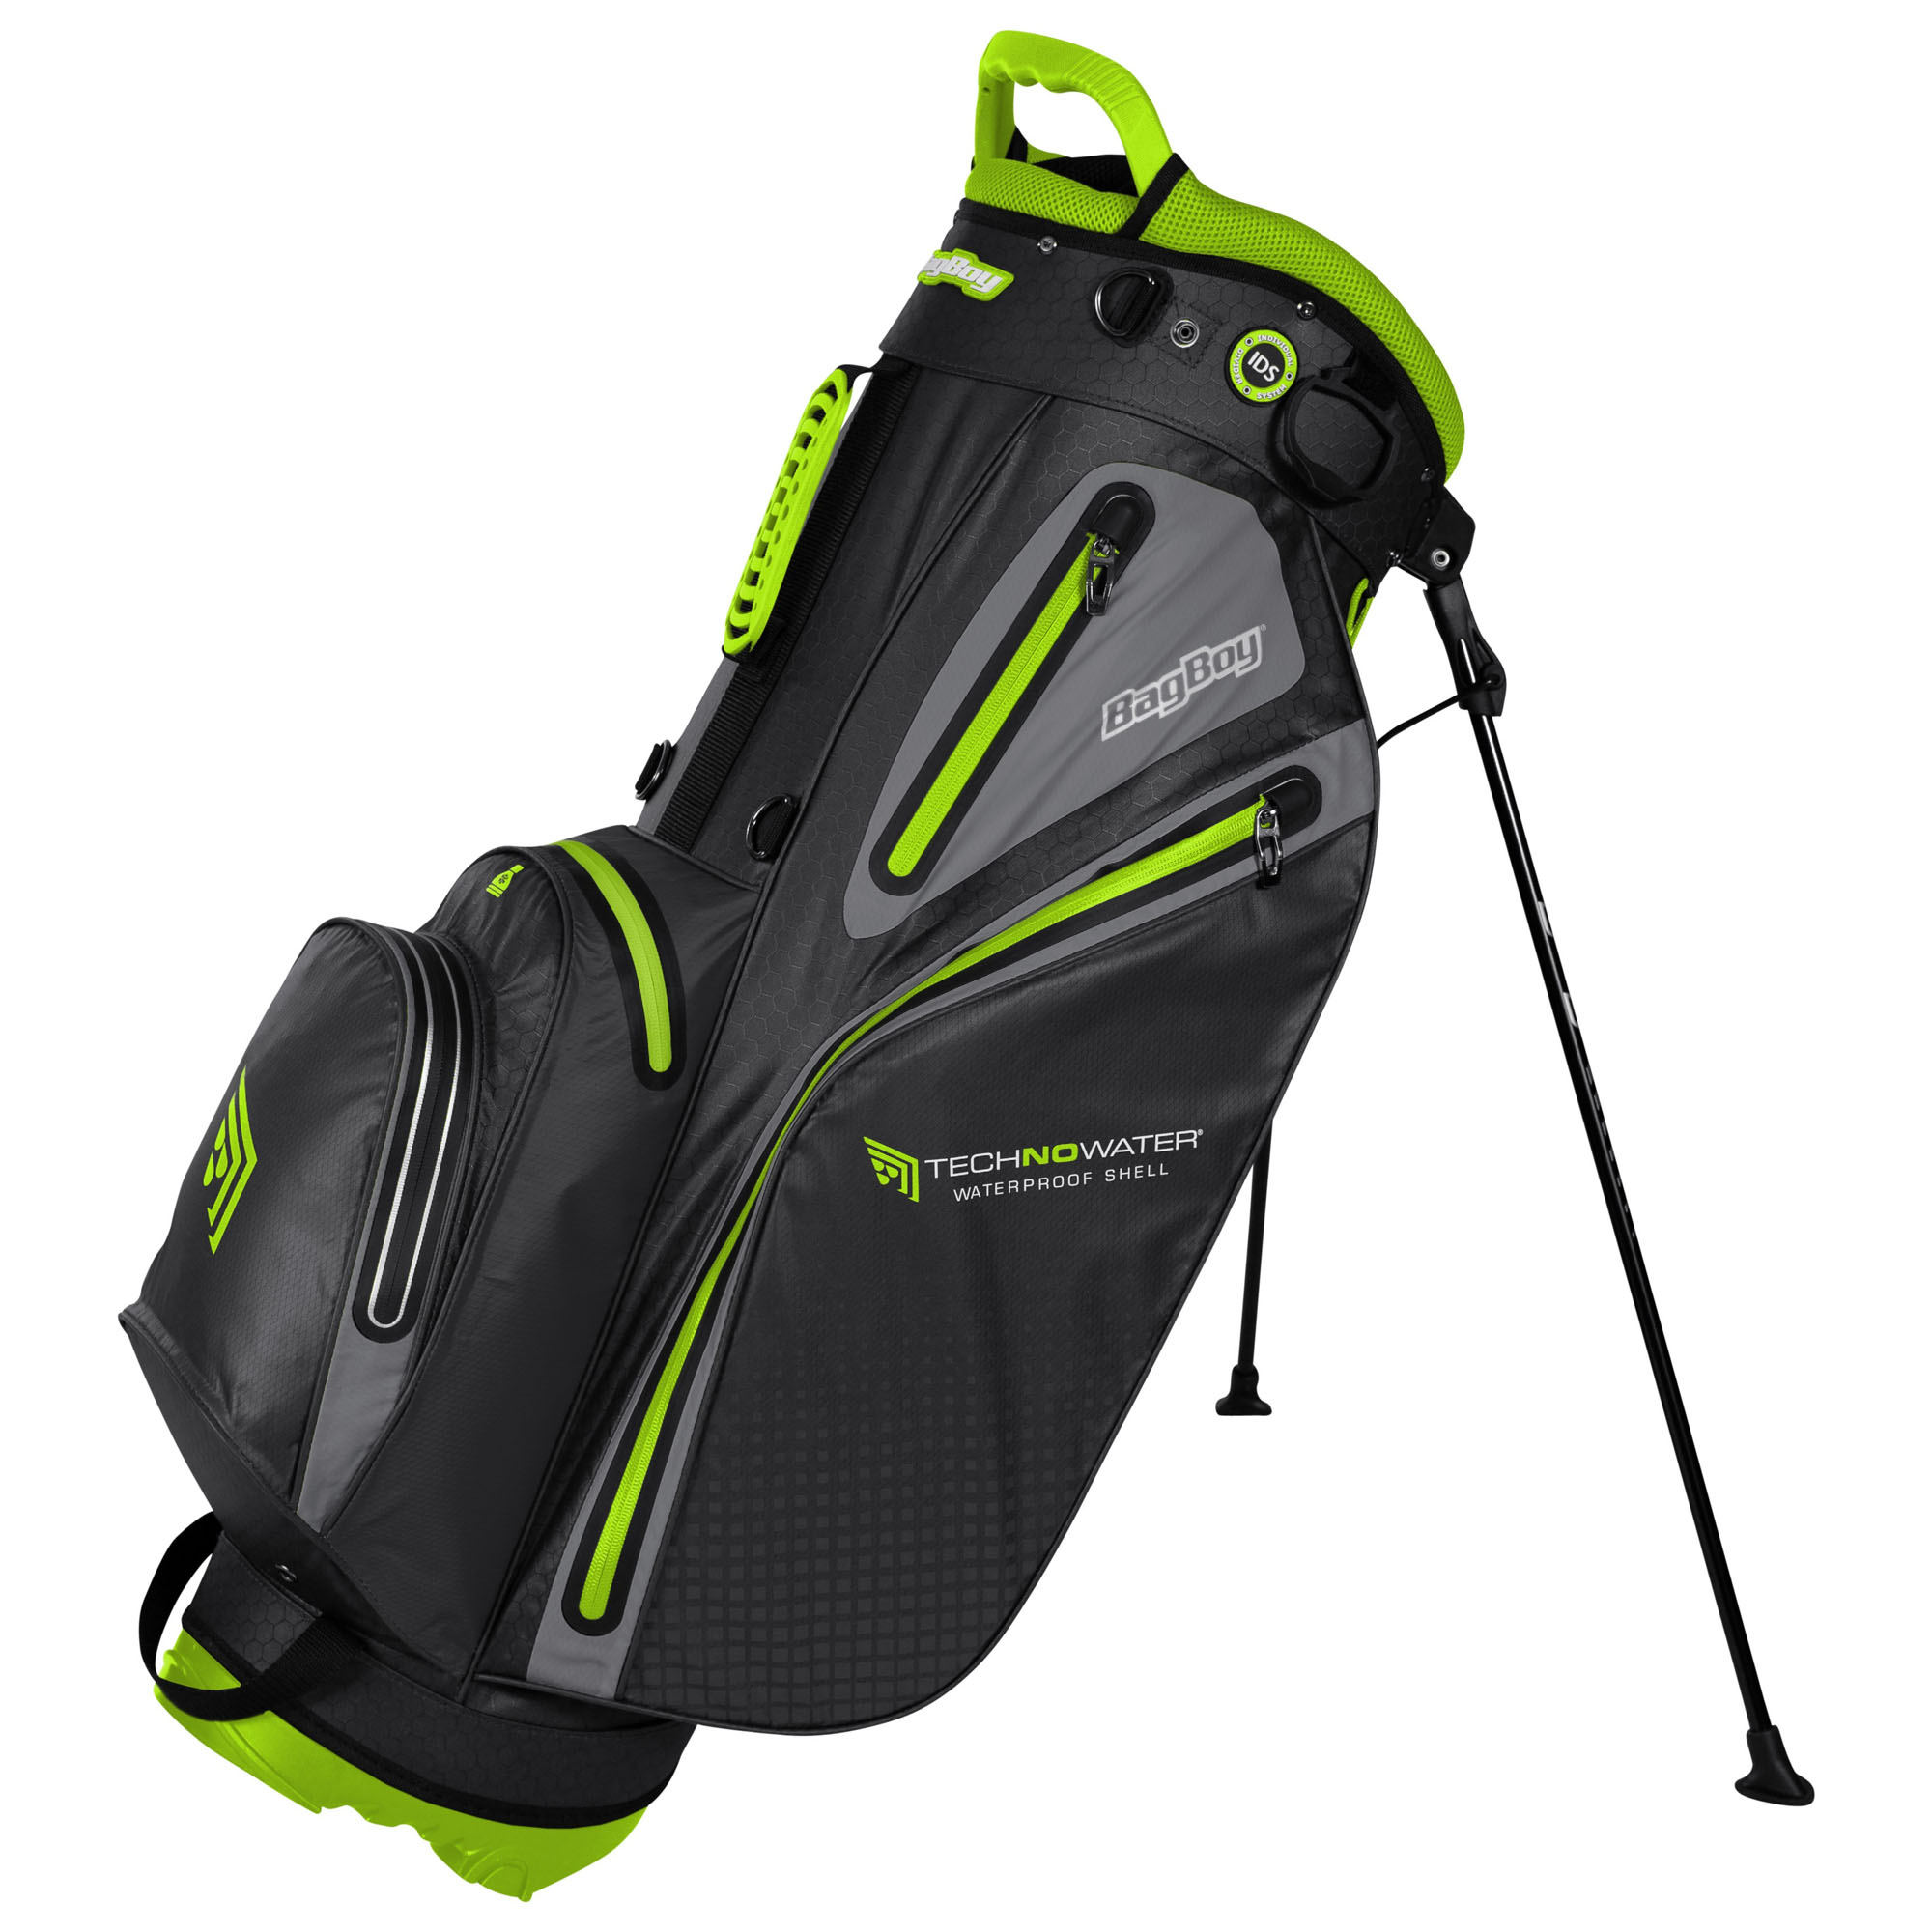 BagBoy Technowater Rapids Golf Stand Bag